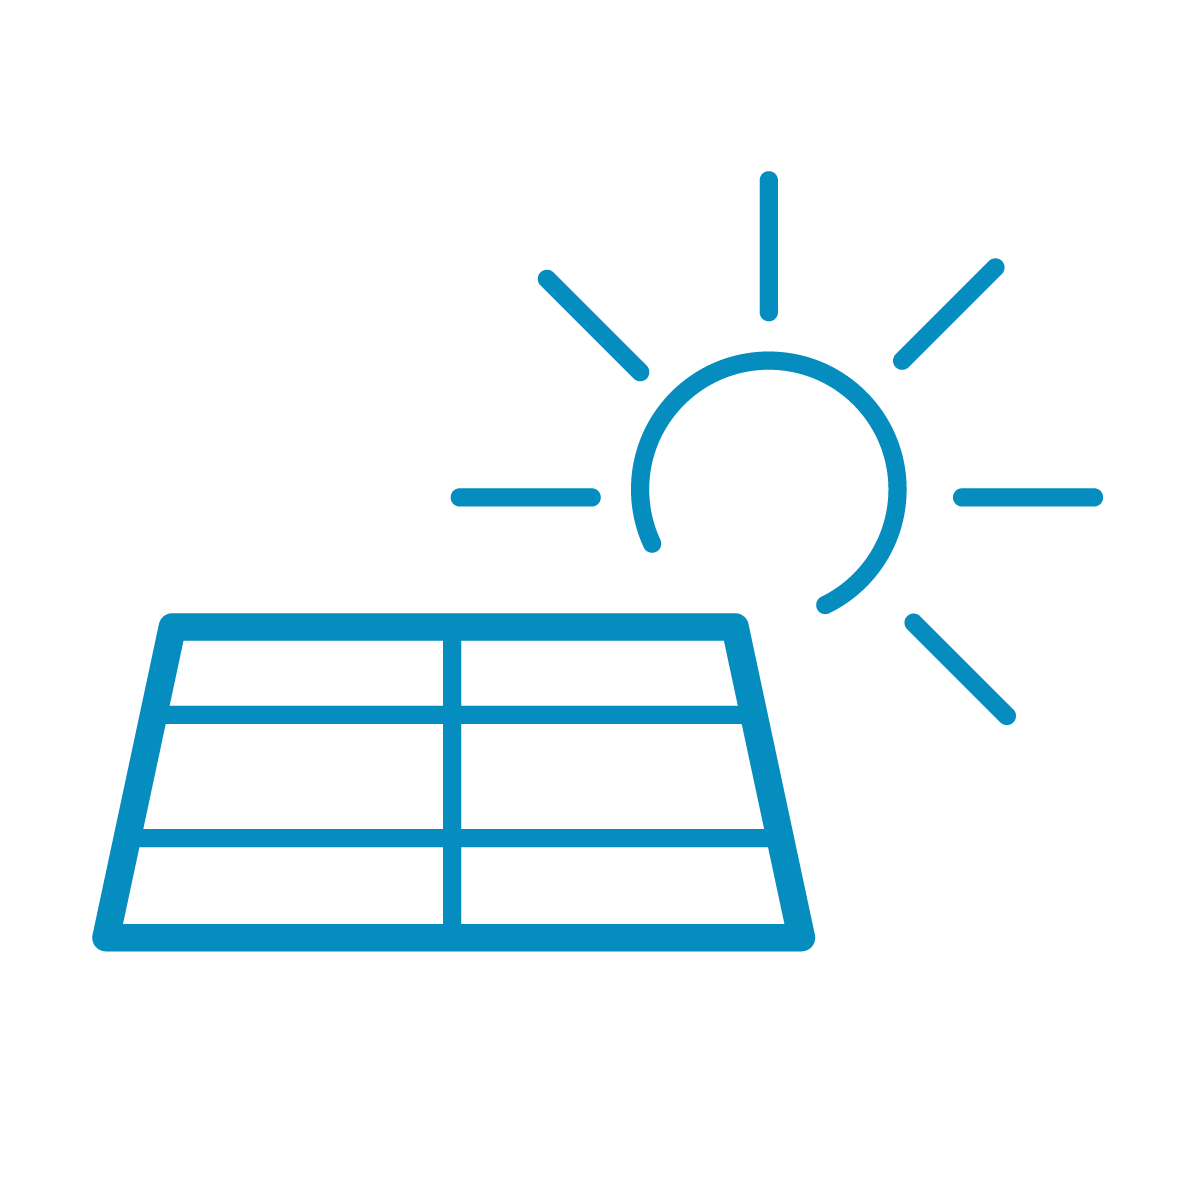 icon-solar.png